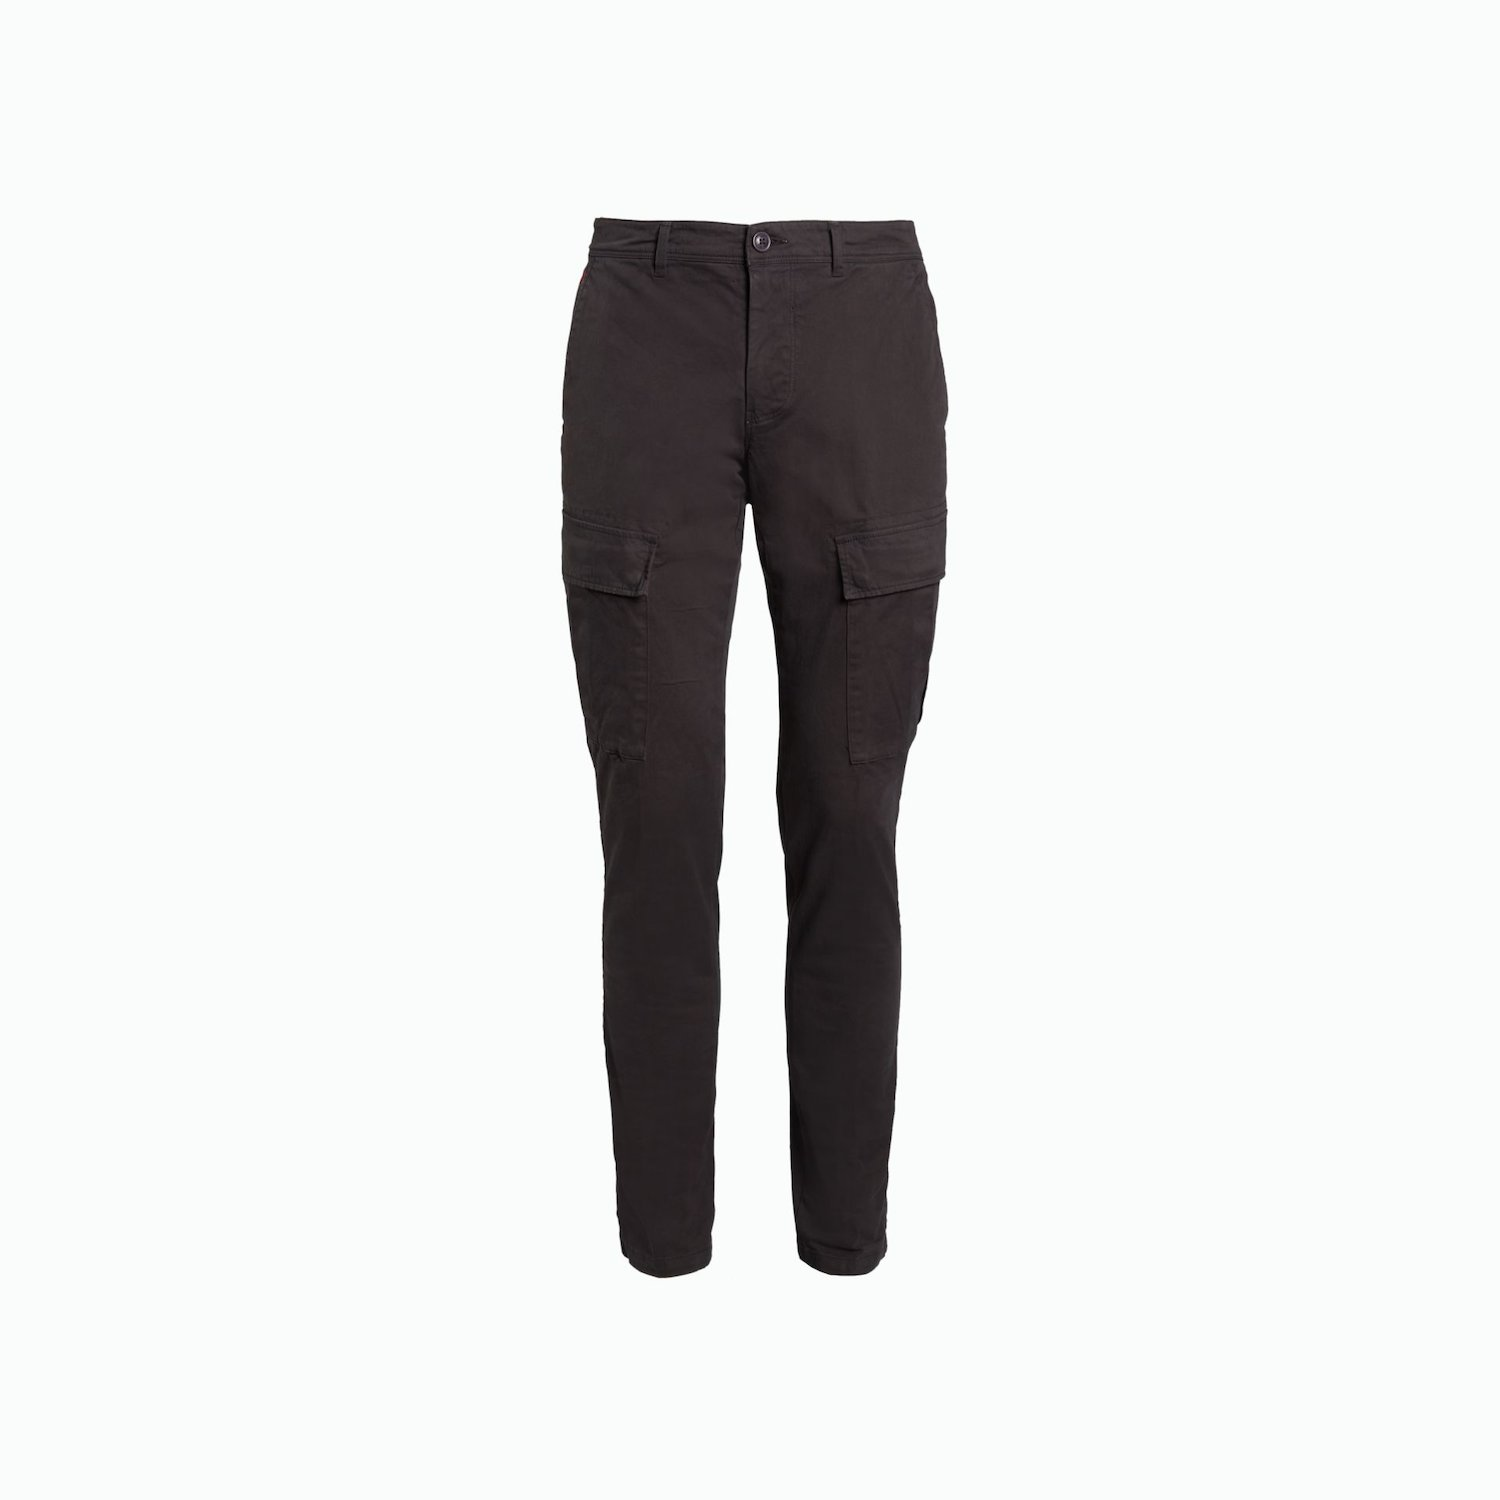 B70 pants - Anthracite